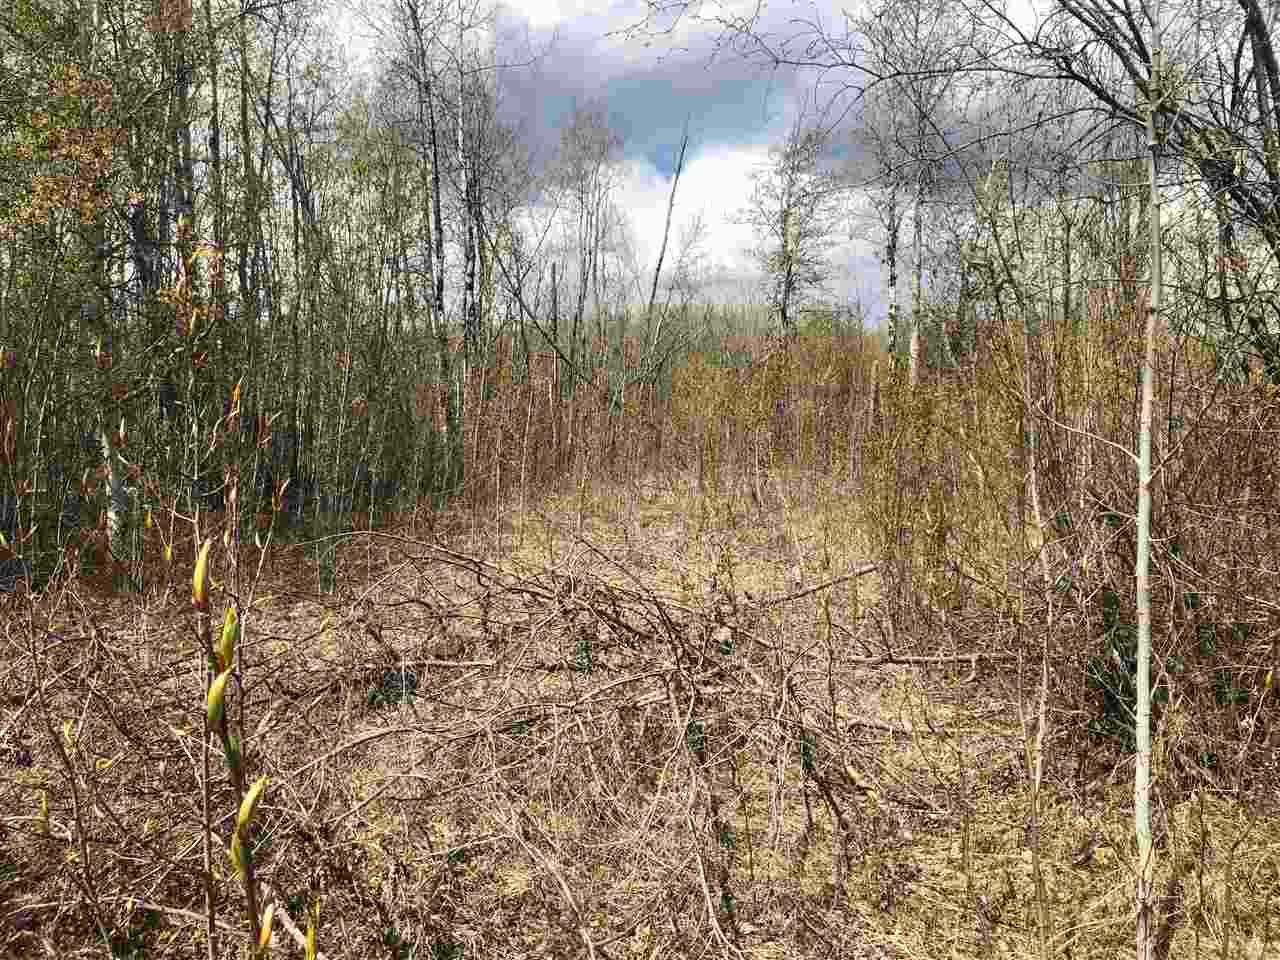 Main Photo: 85 15065 Twp Rd 470: Rural Wetaskiwin County Rural Land/Vacant Lot for sale : MLS®# E4243878